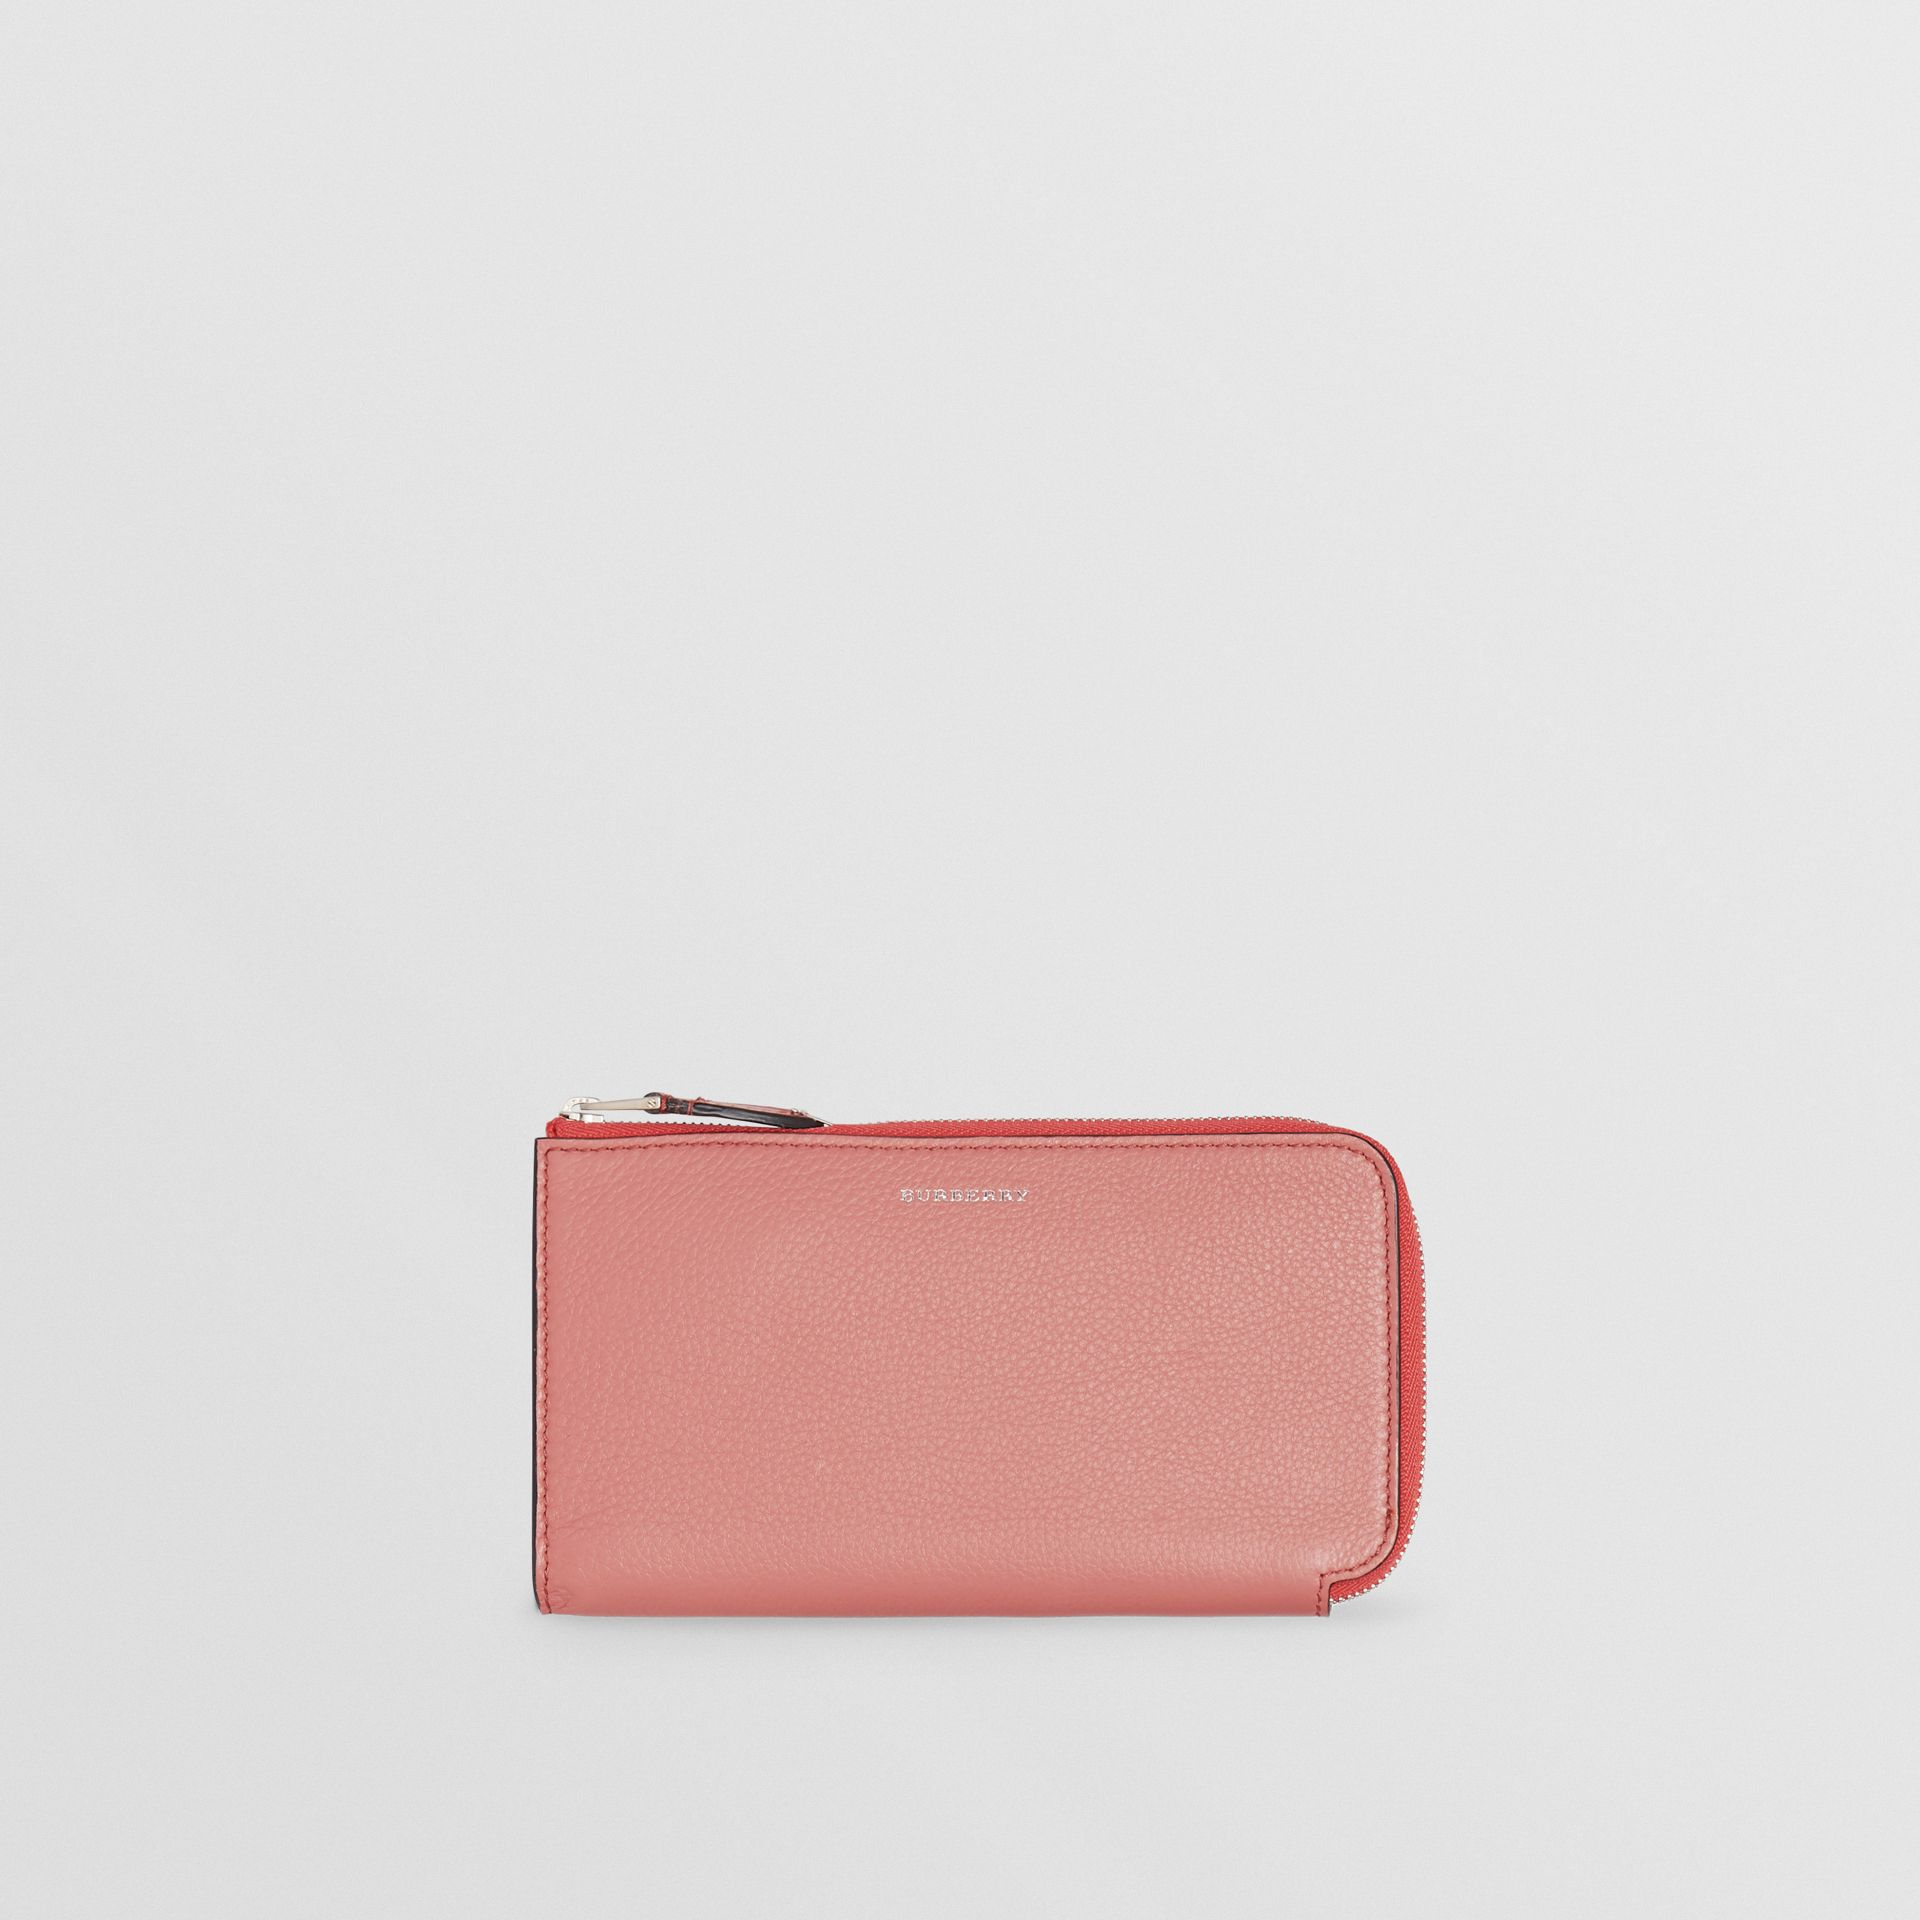 Two-tone Leather Ziparound Wallet and Coin Case in Dusty Rose - Women | Burberry - gallery image 5